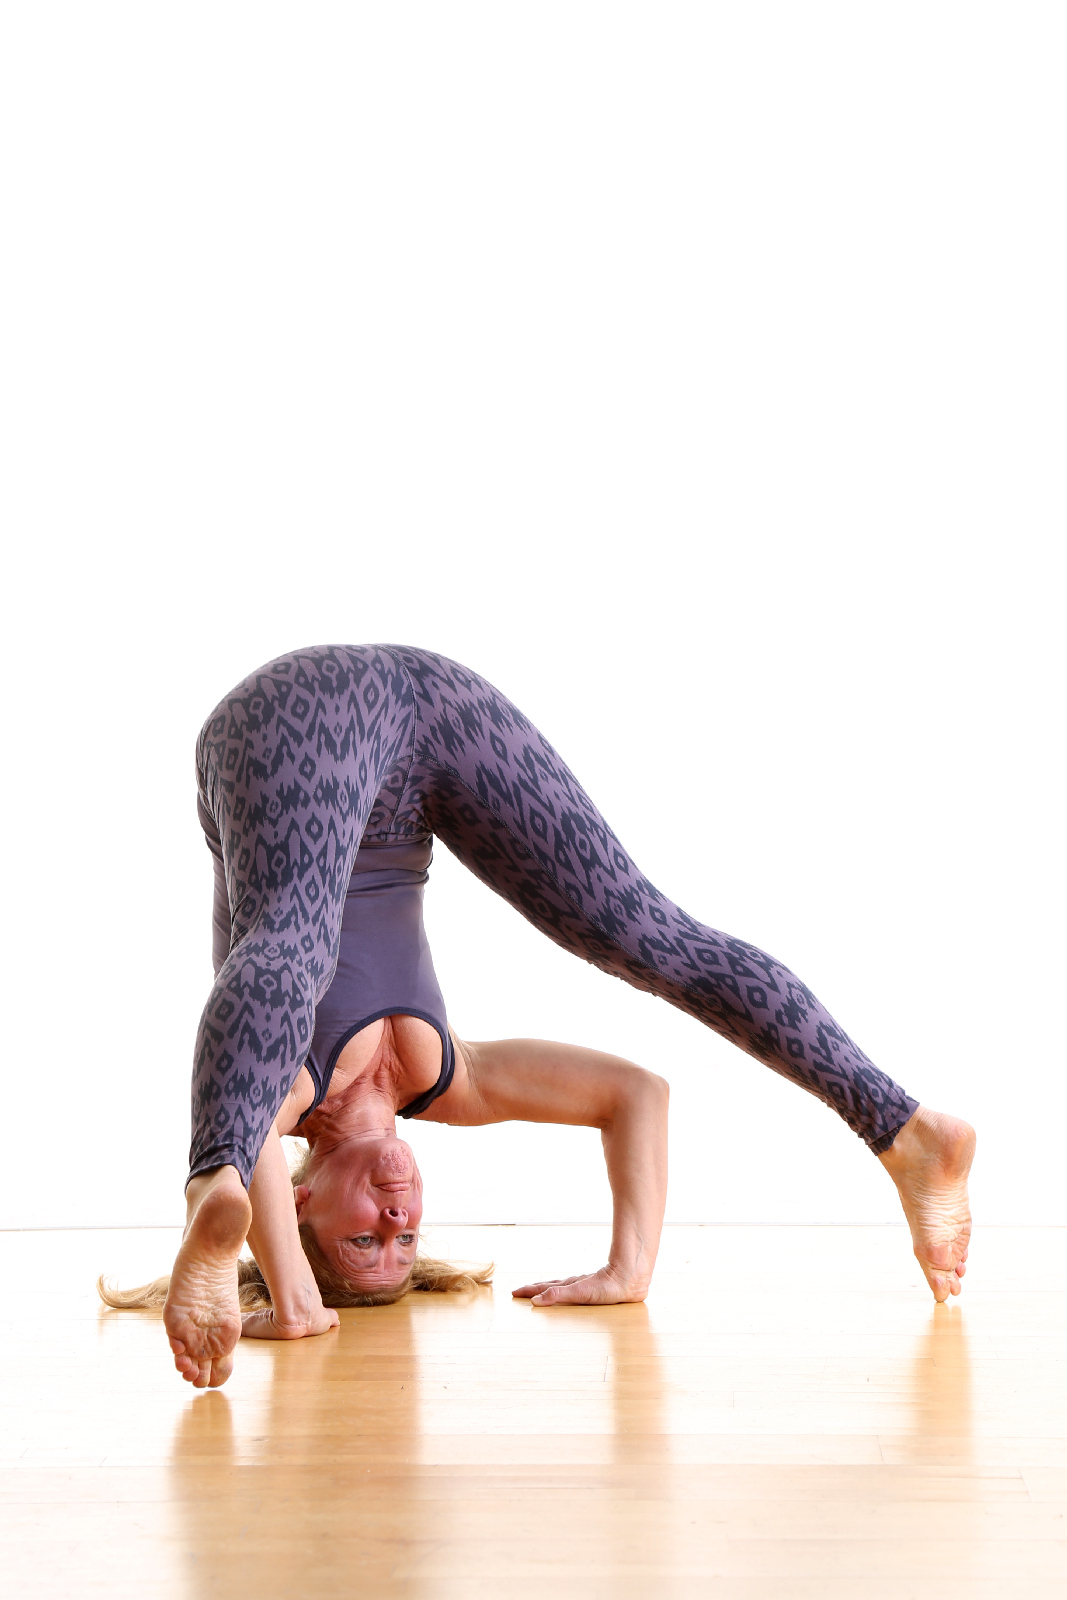 anne-mehn-motion-and-silence-yoga-3